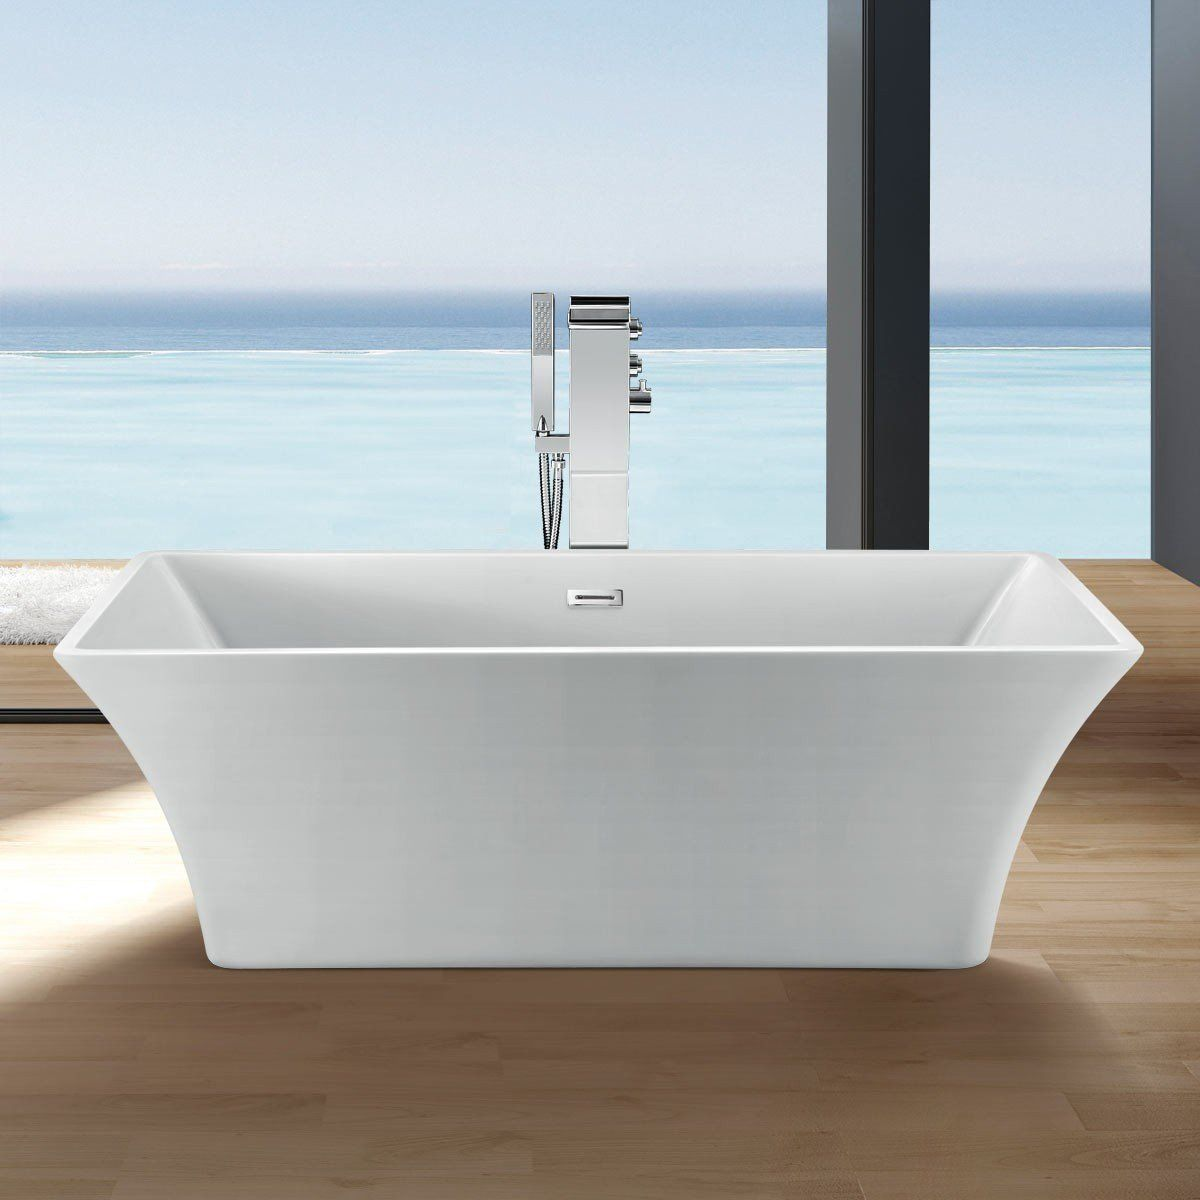 Randolph Morris 60 Inch Acrylic Double Ended Freestanding Tub - No ...